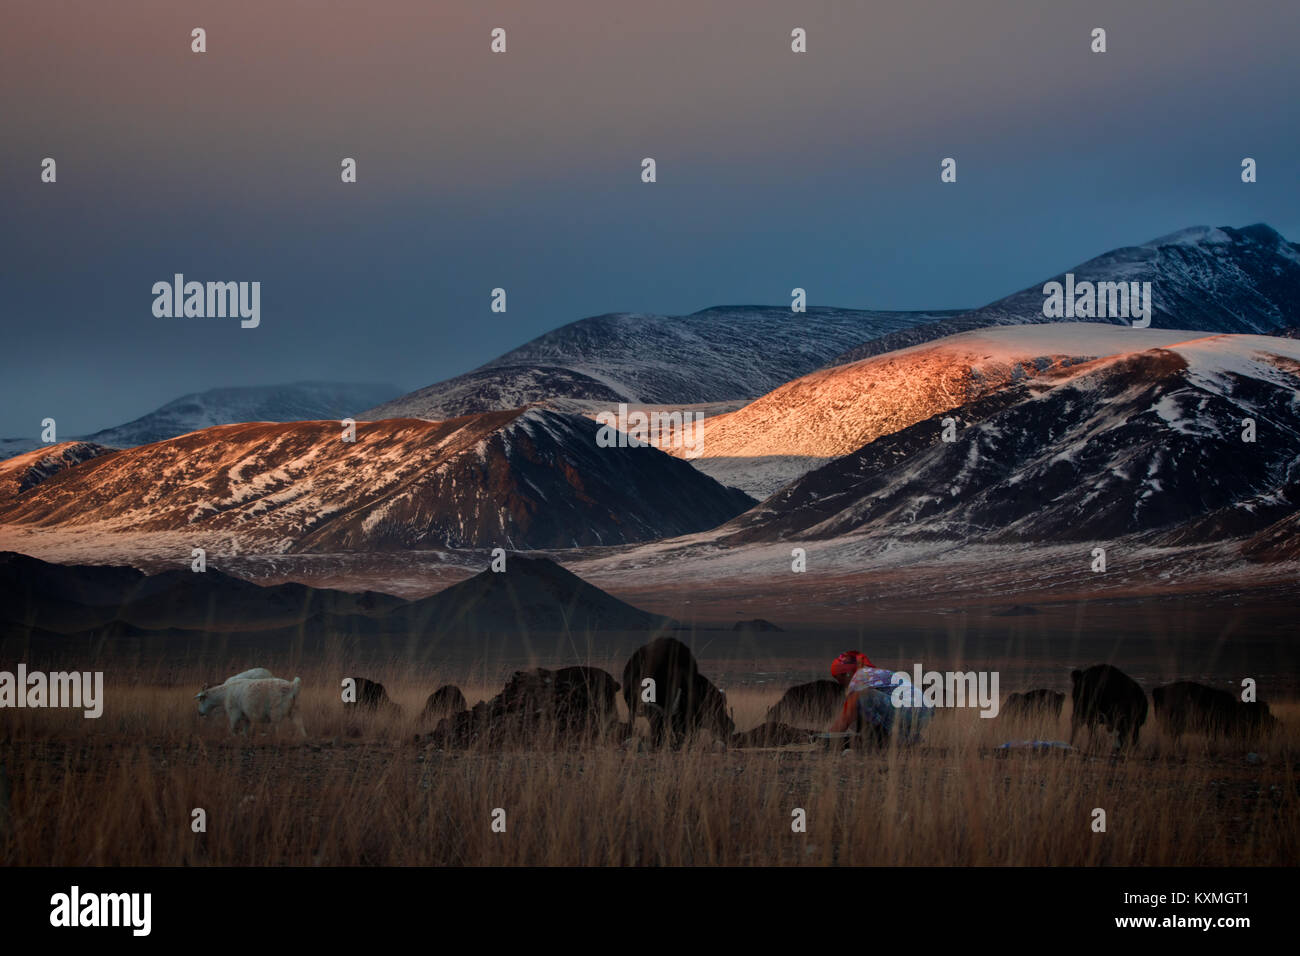 Woman goat shepherd collecting dung for fireplace sunset winter Mongolia steppes grasslands mountains herding herd - Stock Image